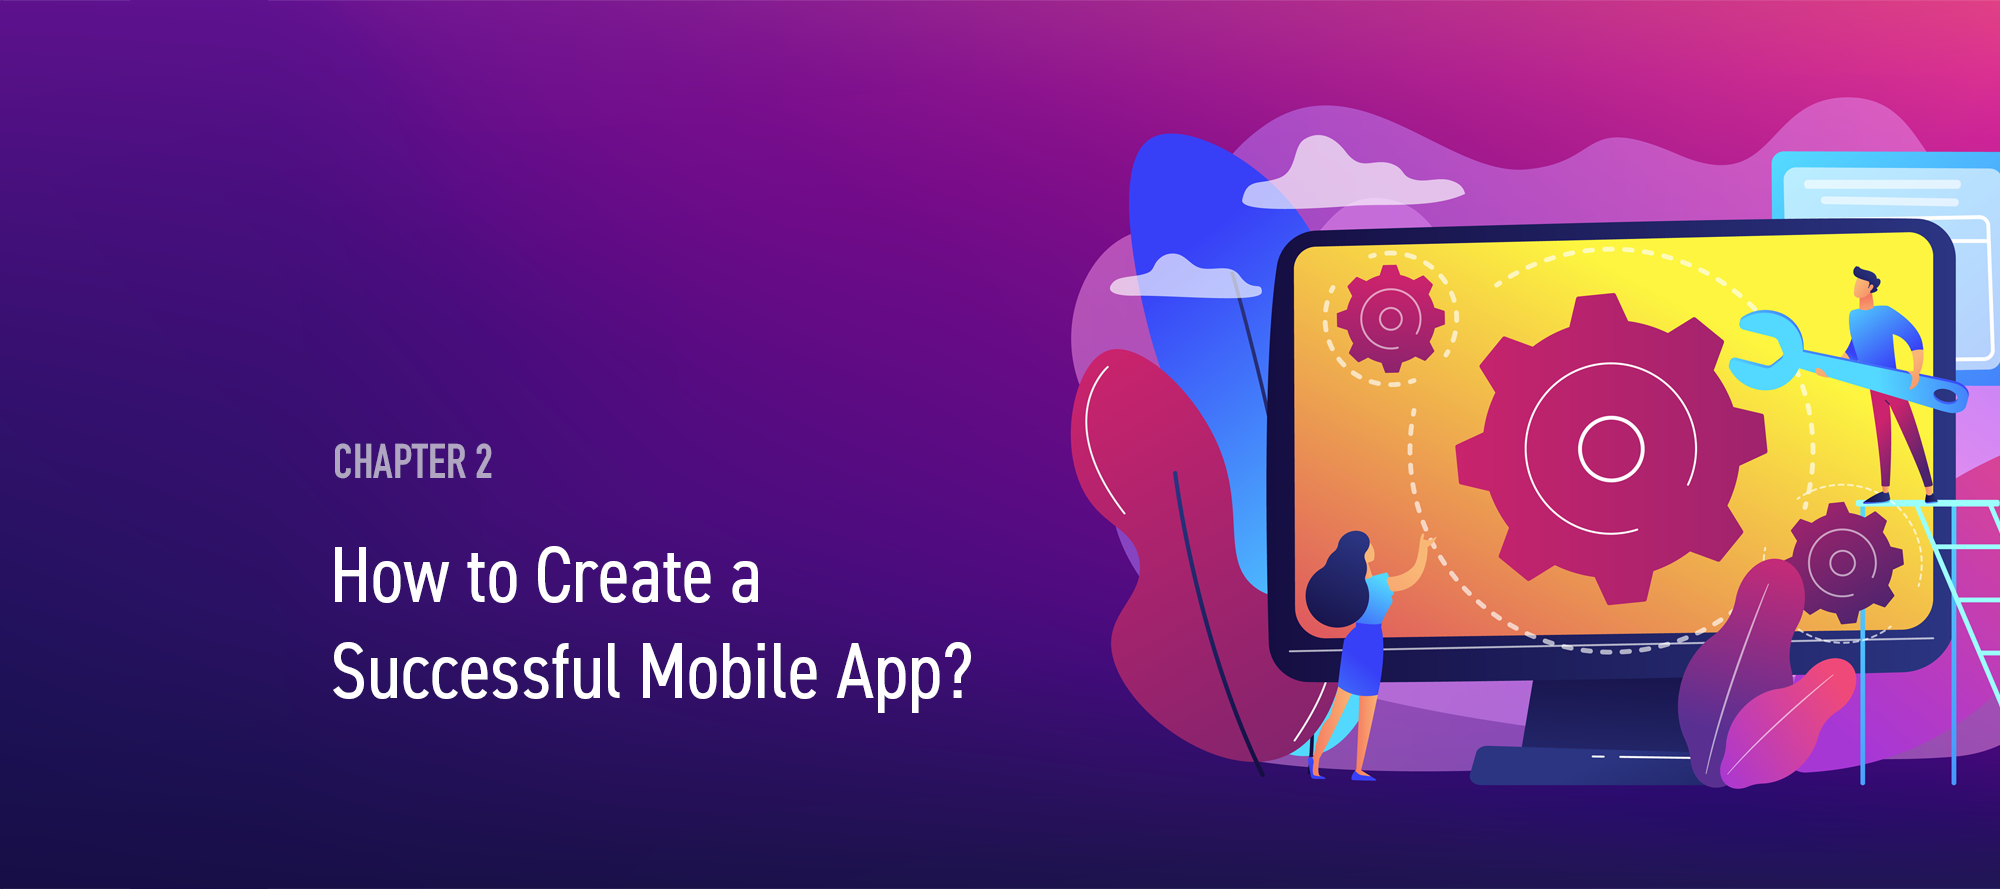 11 steps: How to Create a Successful Mobile App? | Chapter 2